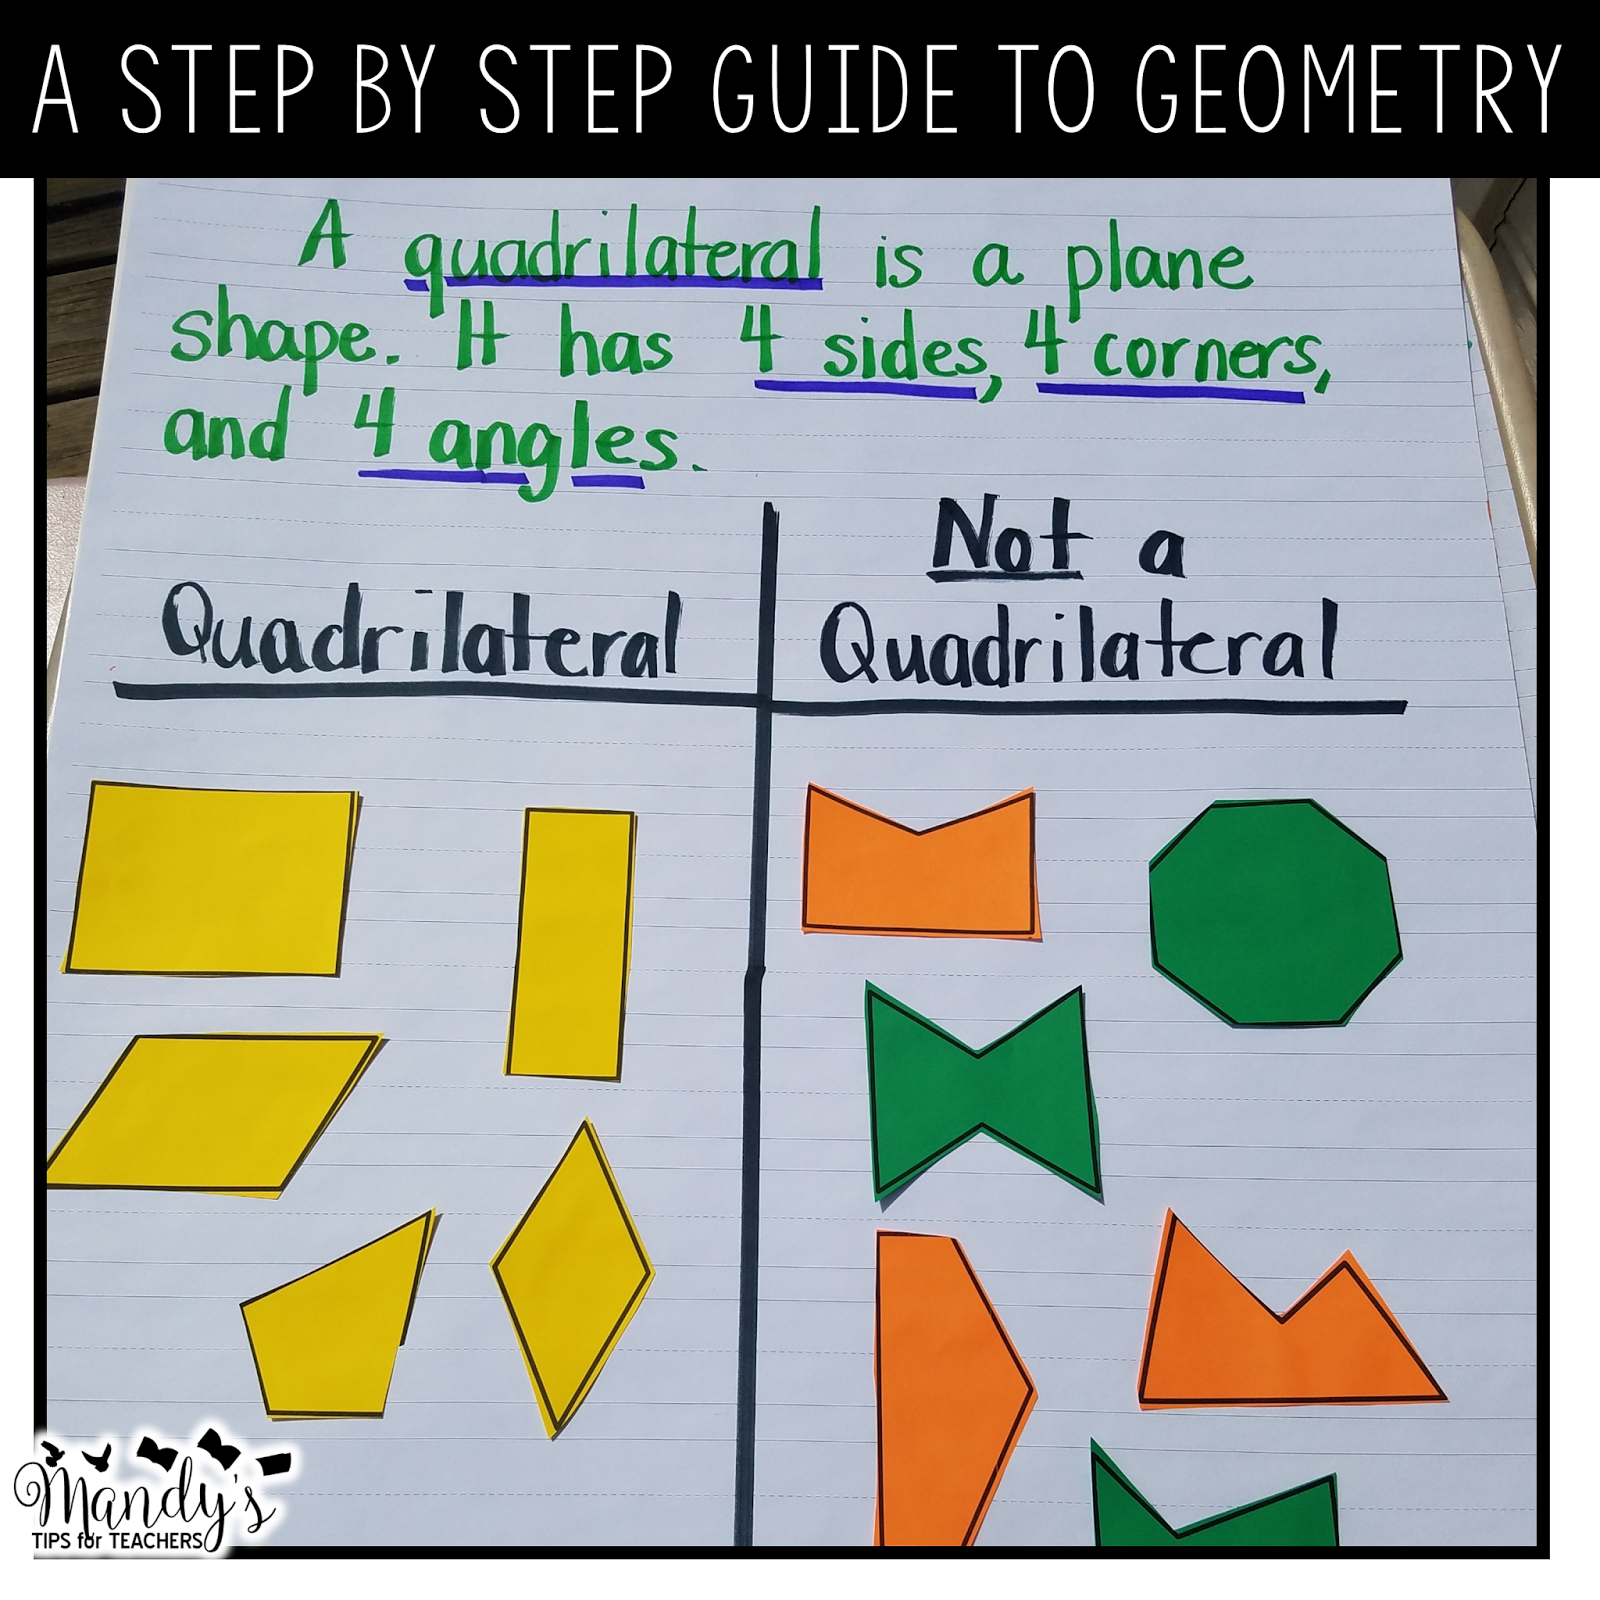 I Have To Teach Geometry Now What Mandy S Tips For Teachers